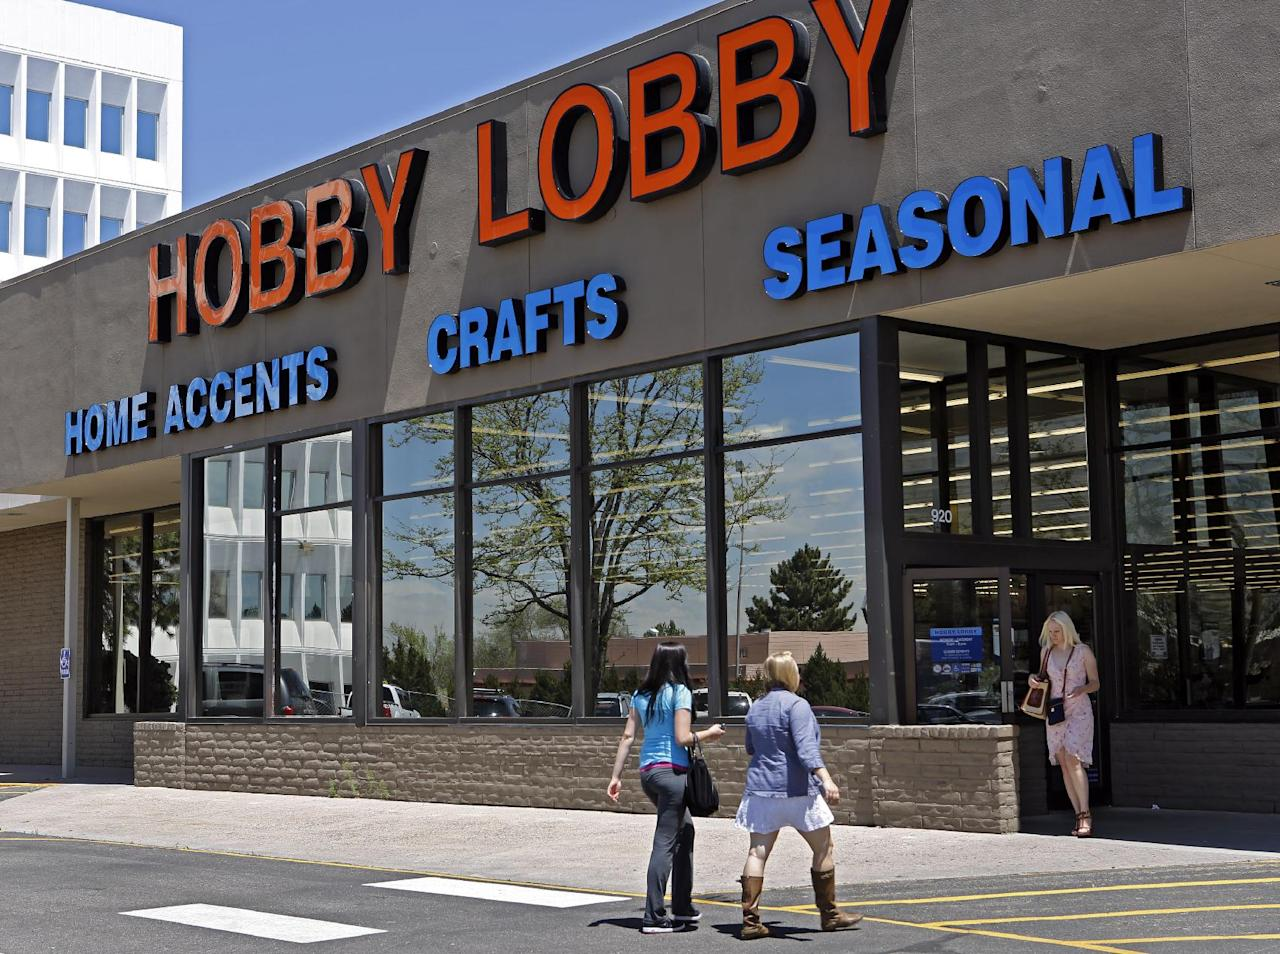 FILE - This May 22, 2013 file photo shows customer at a Hobby Lobby store in Denver. The Supreme Court has agreed to referee another dispute over President Barack Obama's health care law, whether businesses can use religious objections to escape a requirement to cover birth control for employees. The justices said Tuesday they will take up an issue that has divided the lower courts in the face of roughly 40 lawsuits from for-profit companies asking to be spared from having to cover some or all forms of contraception. The court will consider two cases. One involves Hobby Lobby Inc., an Oklahoma City-based arts and crafts chain with 13,000 full-time employees. Hobby Lobby won in the lower courts. (AP Photo/Ed Andrieski, File)